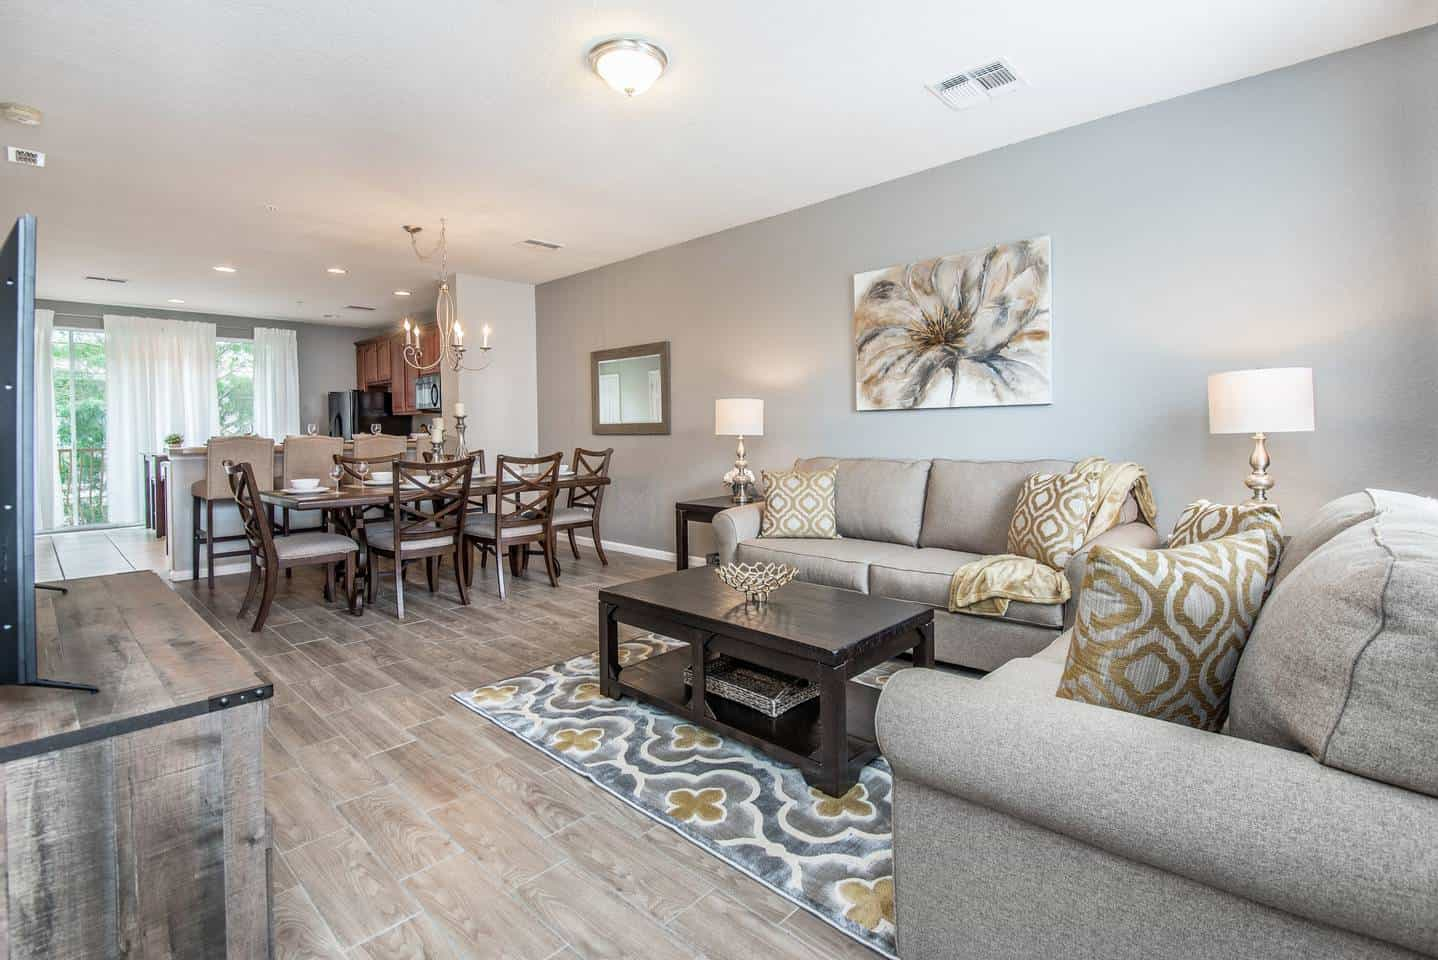 Dreamy! Luxury condo listed on Airbnb Orlando. Close to Seaworld and Universal